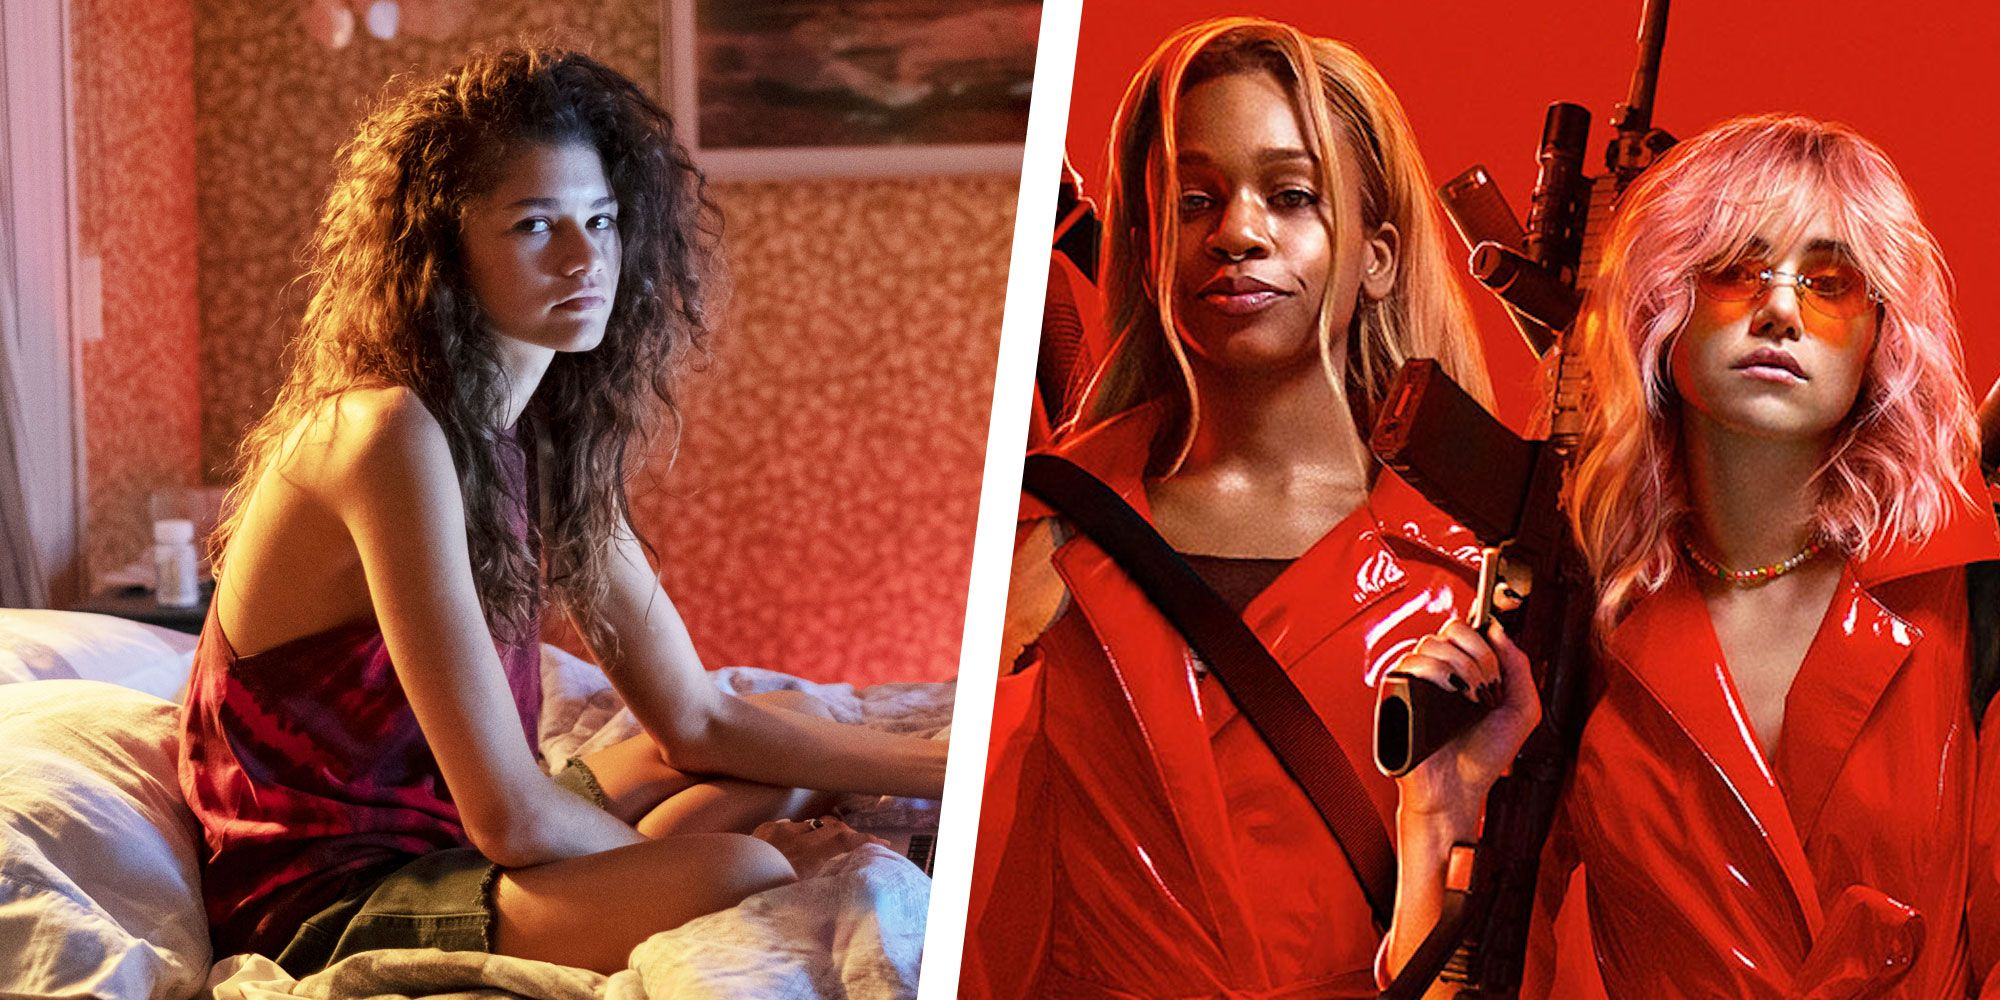 If You Liked Euphoria, You Should Check Out Assassination Nation Immediately